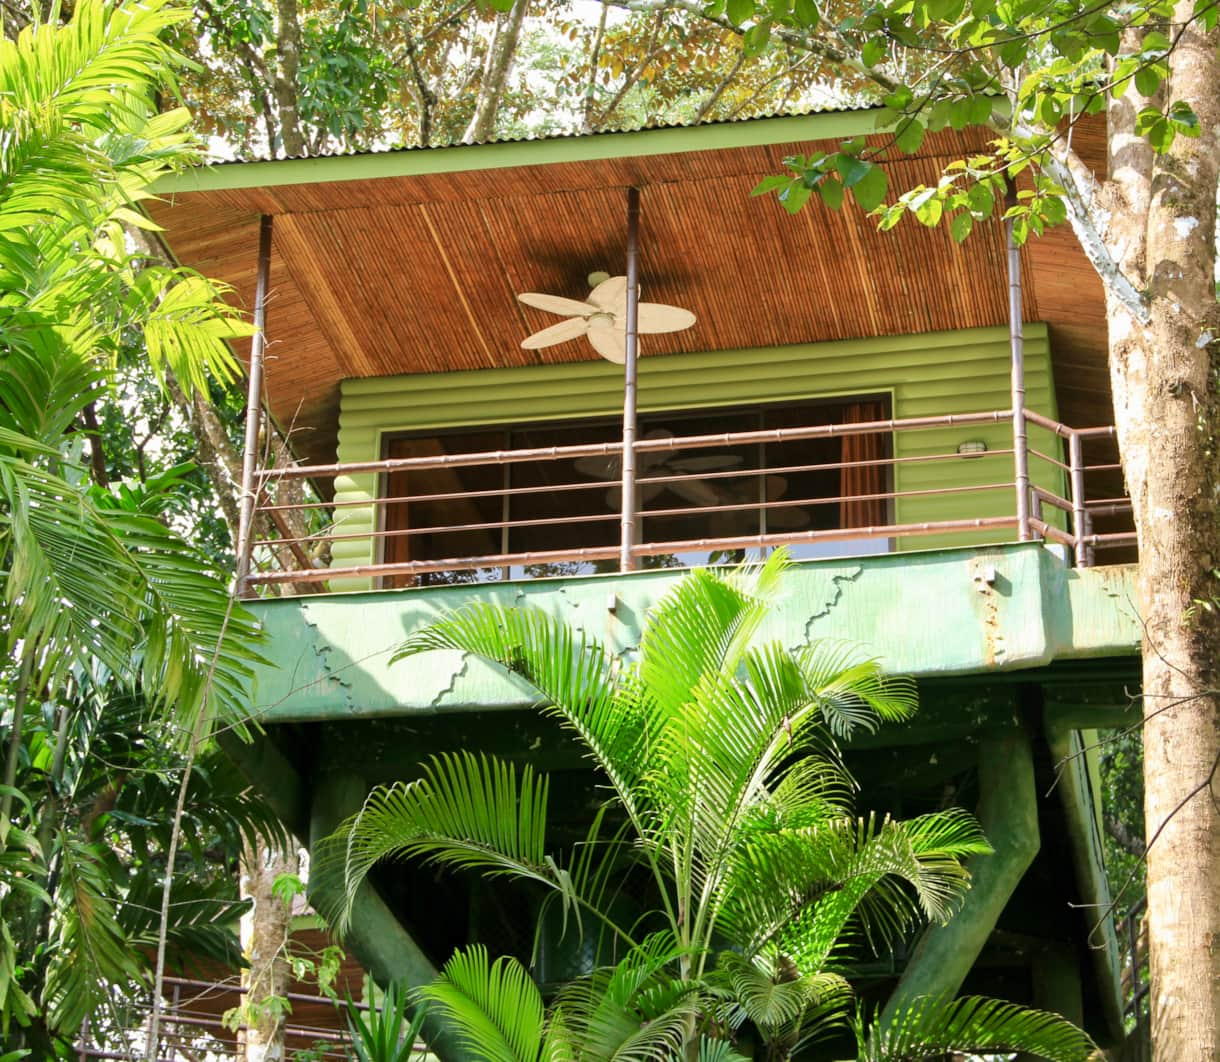 Elevated amongst trees.